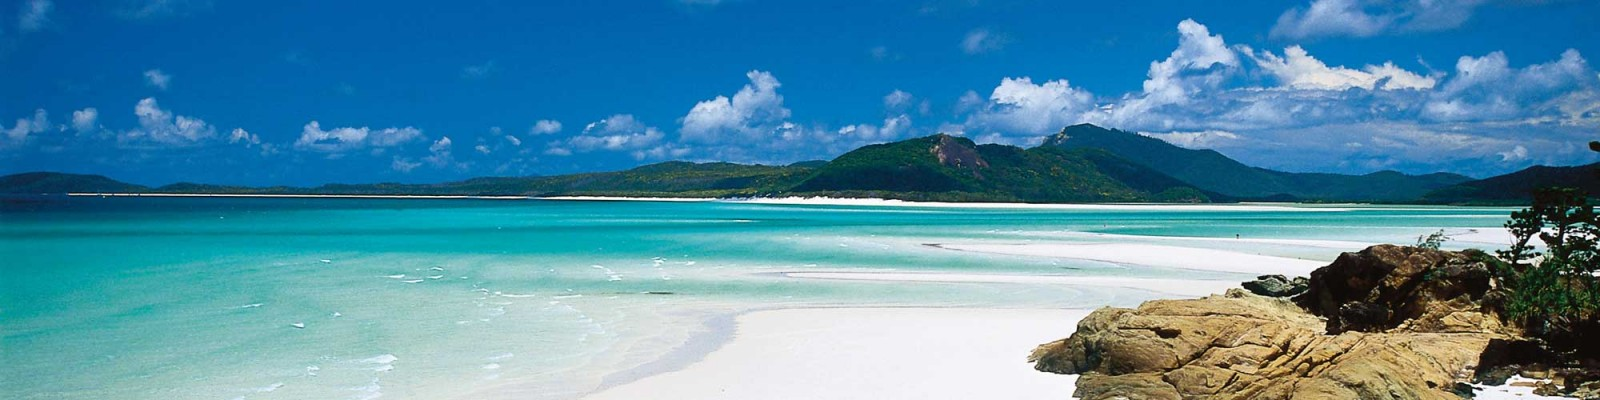 Tenrag Yacht Charter: Visit the Whitsunday Islands